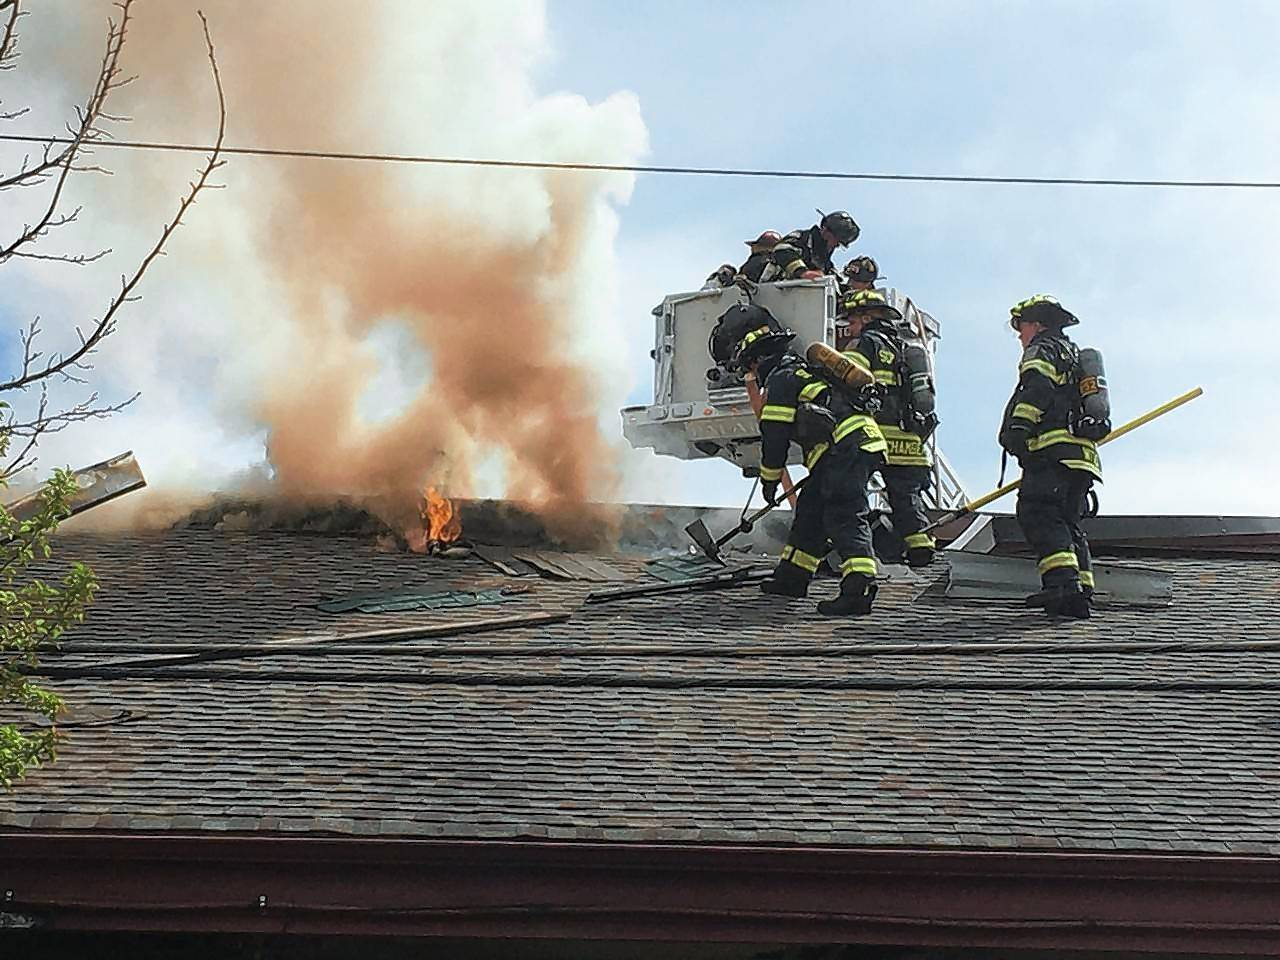 Firefighters battled a blaze from the roof of Egg'lectic Cafe Wednesday in Rolling Meadows. The fire caused an estimated $100,000 in damage to the restaurant.